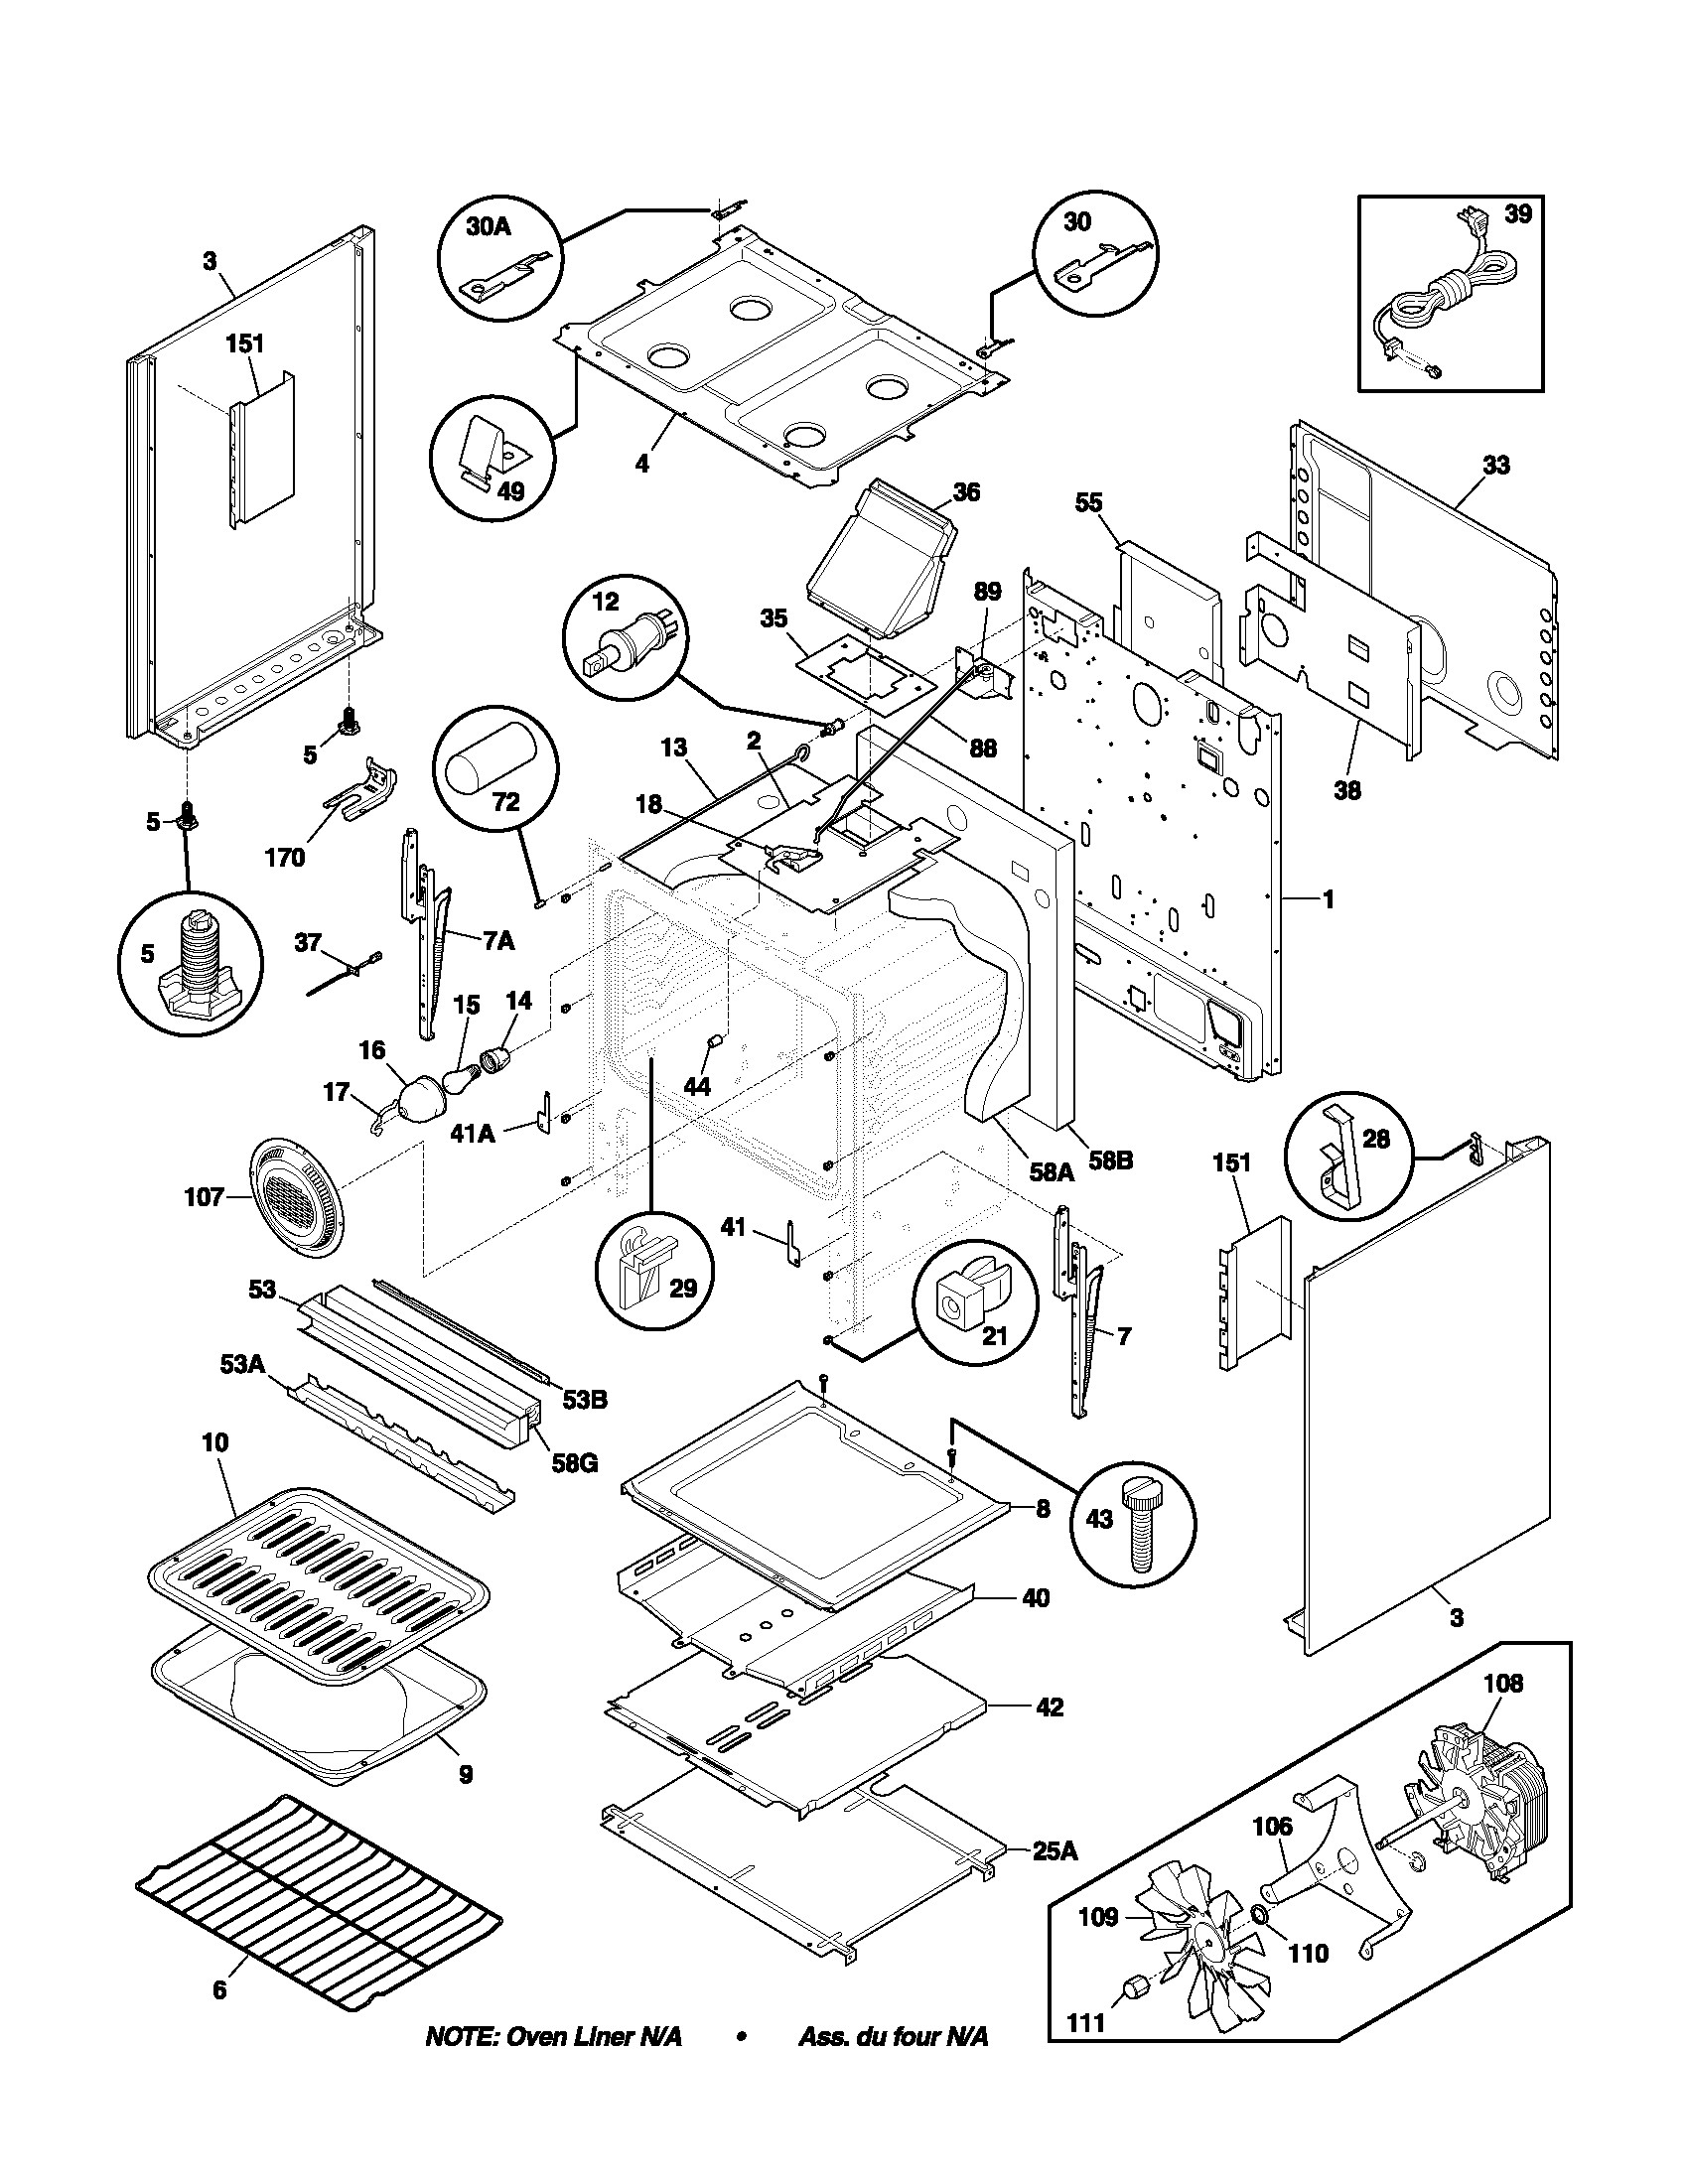 Frigidaire Stove Parts Diagram Looking for Frigidaire Model Glgf377aqe Gas Range Repair Of Frigidaire Stove Parts Diagram Looking for Frigidaire Model Plefmz99eca Electric Range Repair